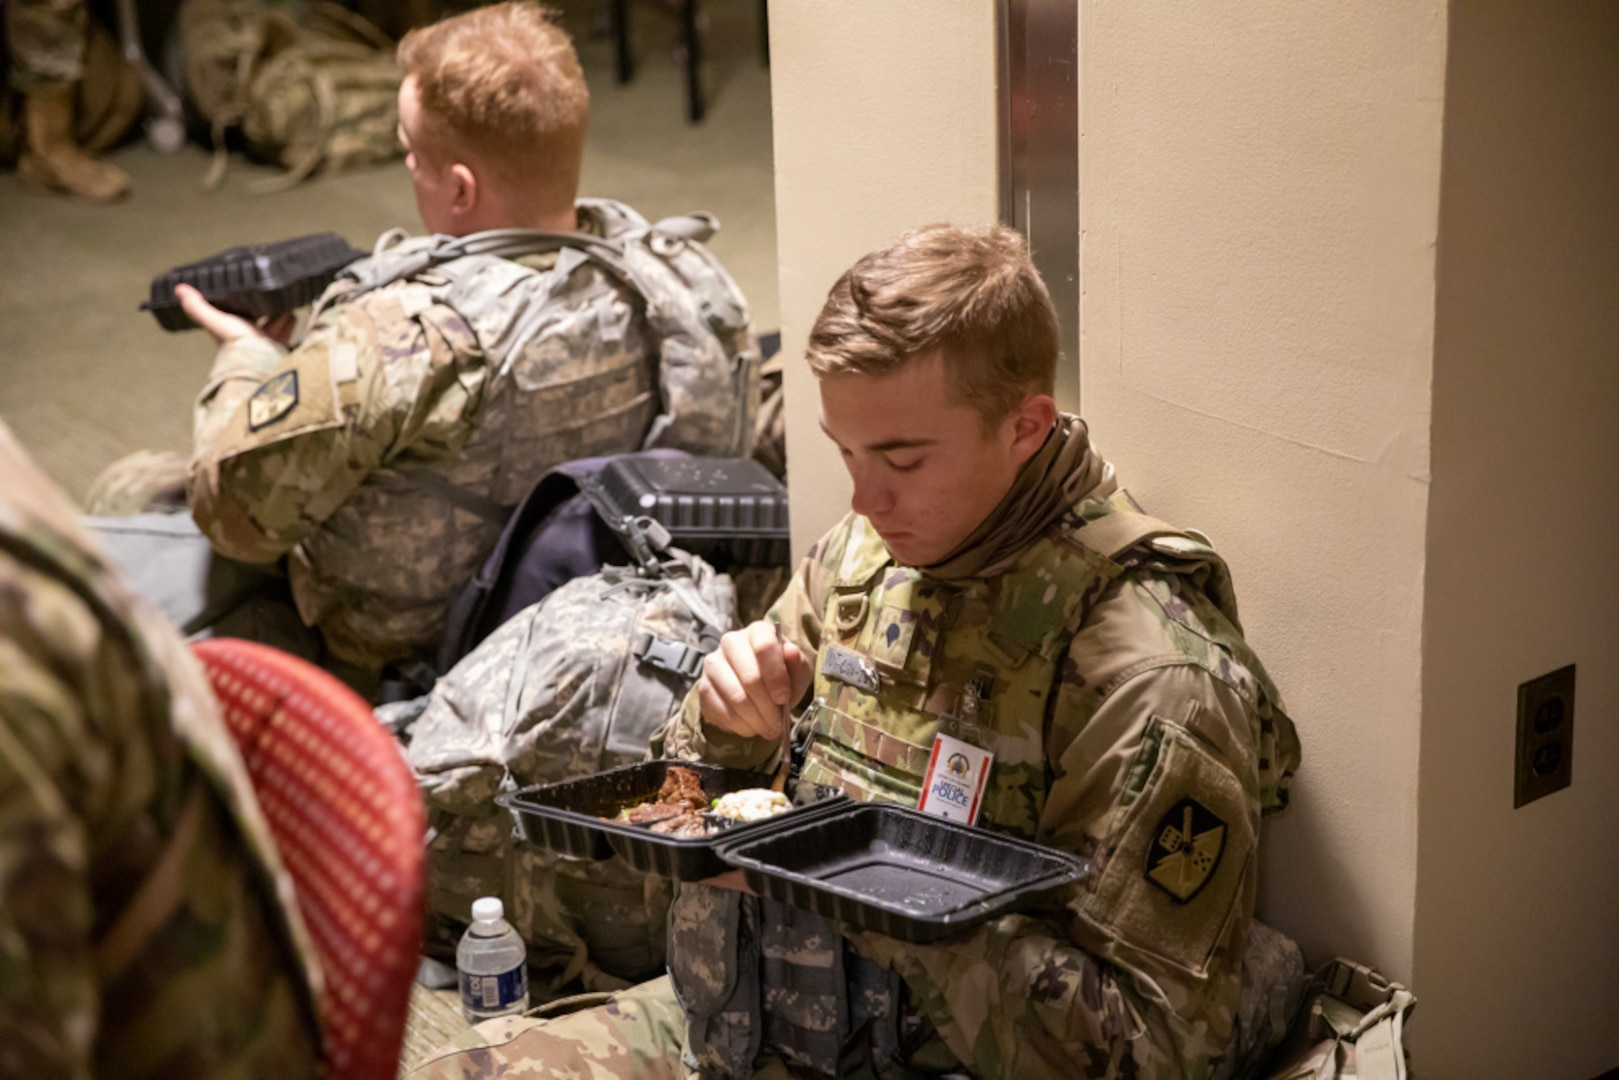 A soldier sits in uniform leaning on a wall eating a meal.